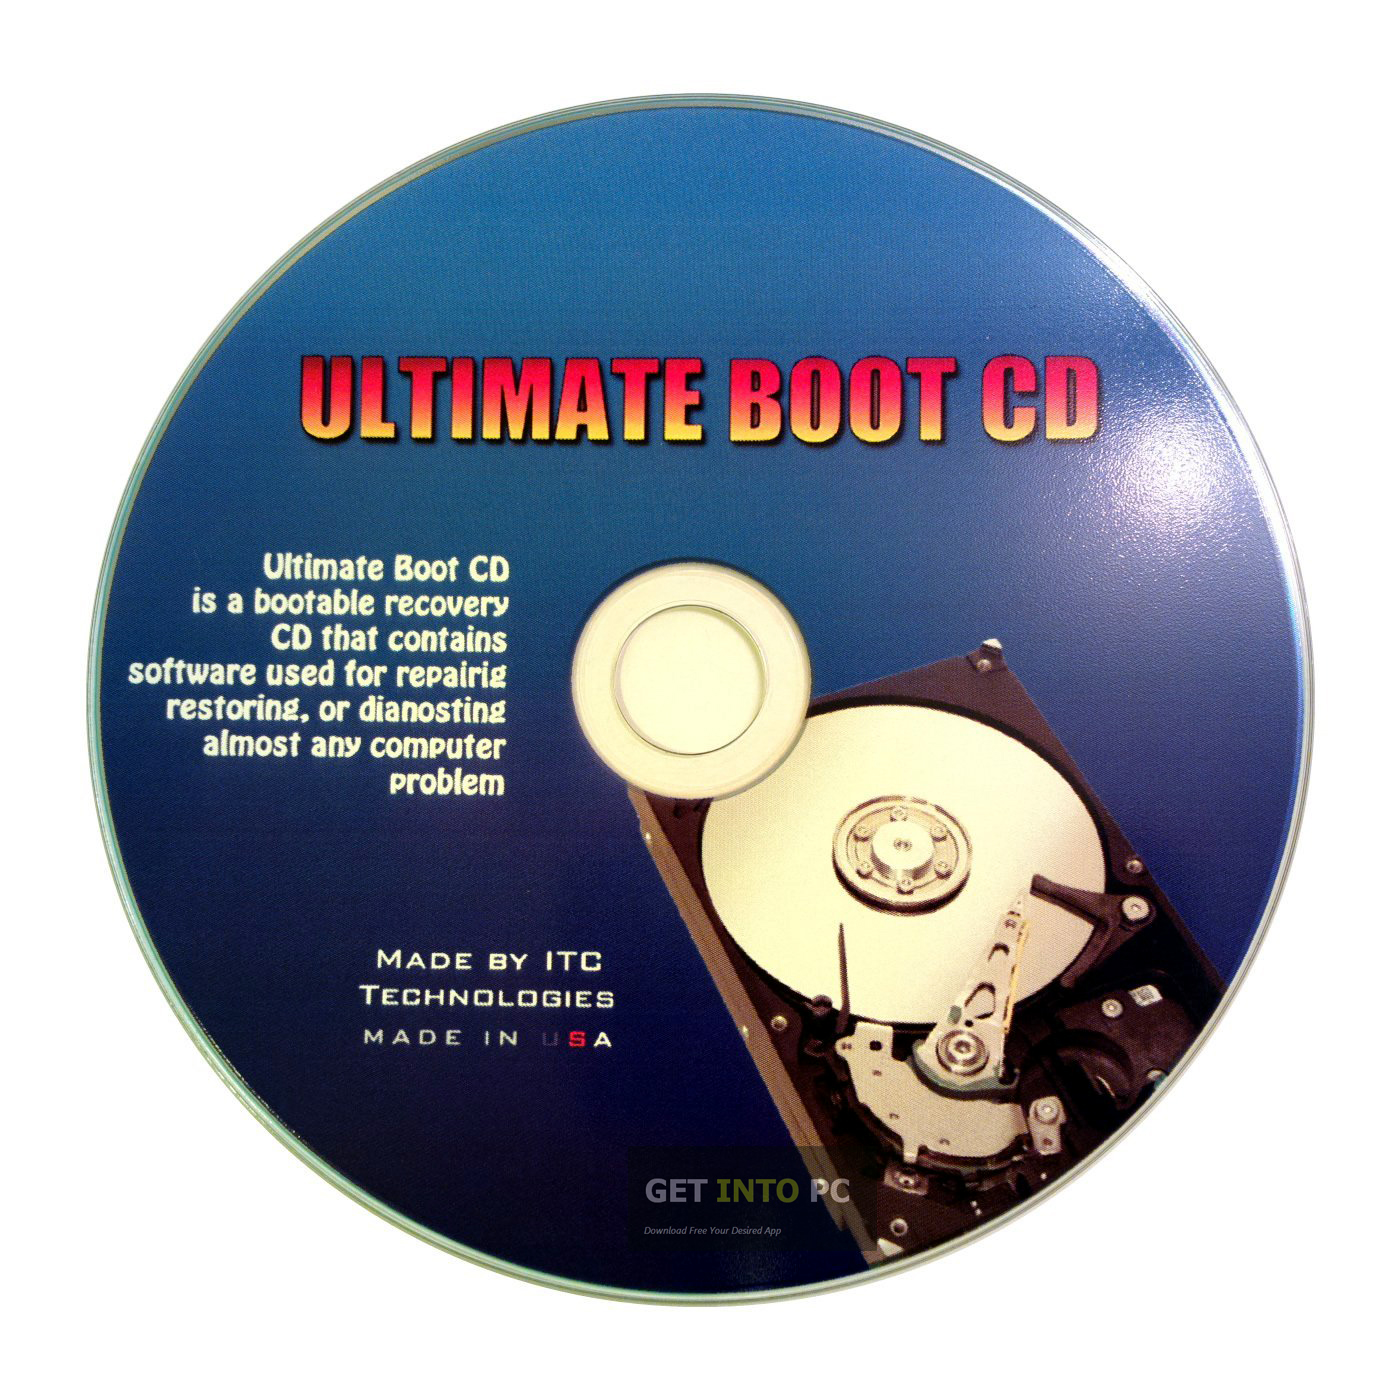 Ultimate Boot CD Download ISO Image